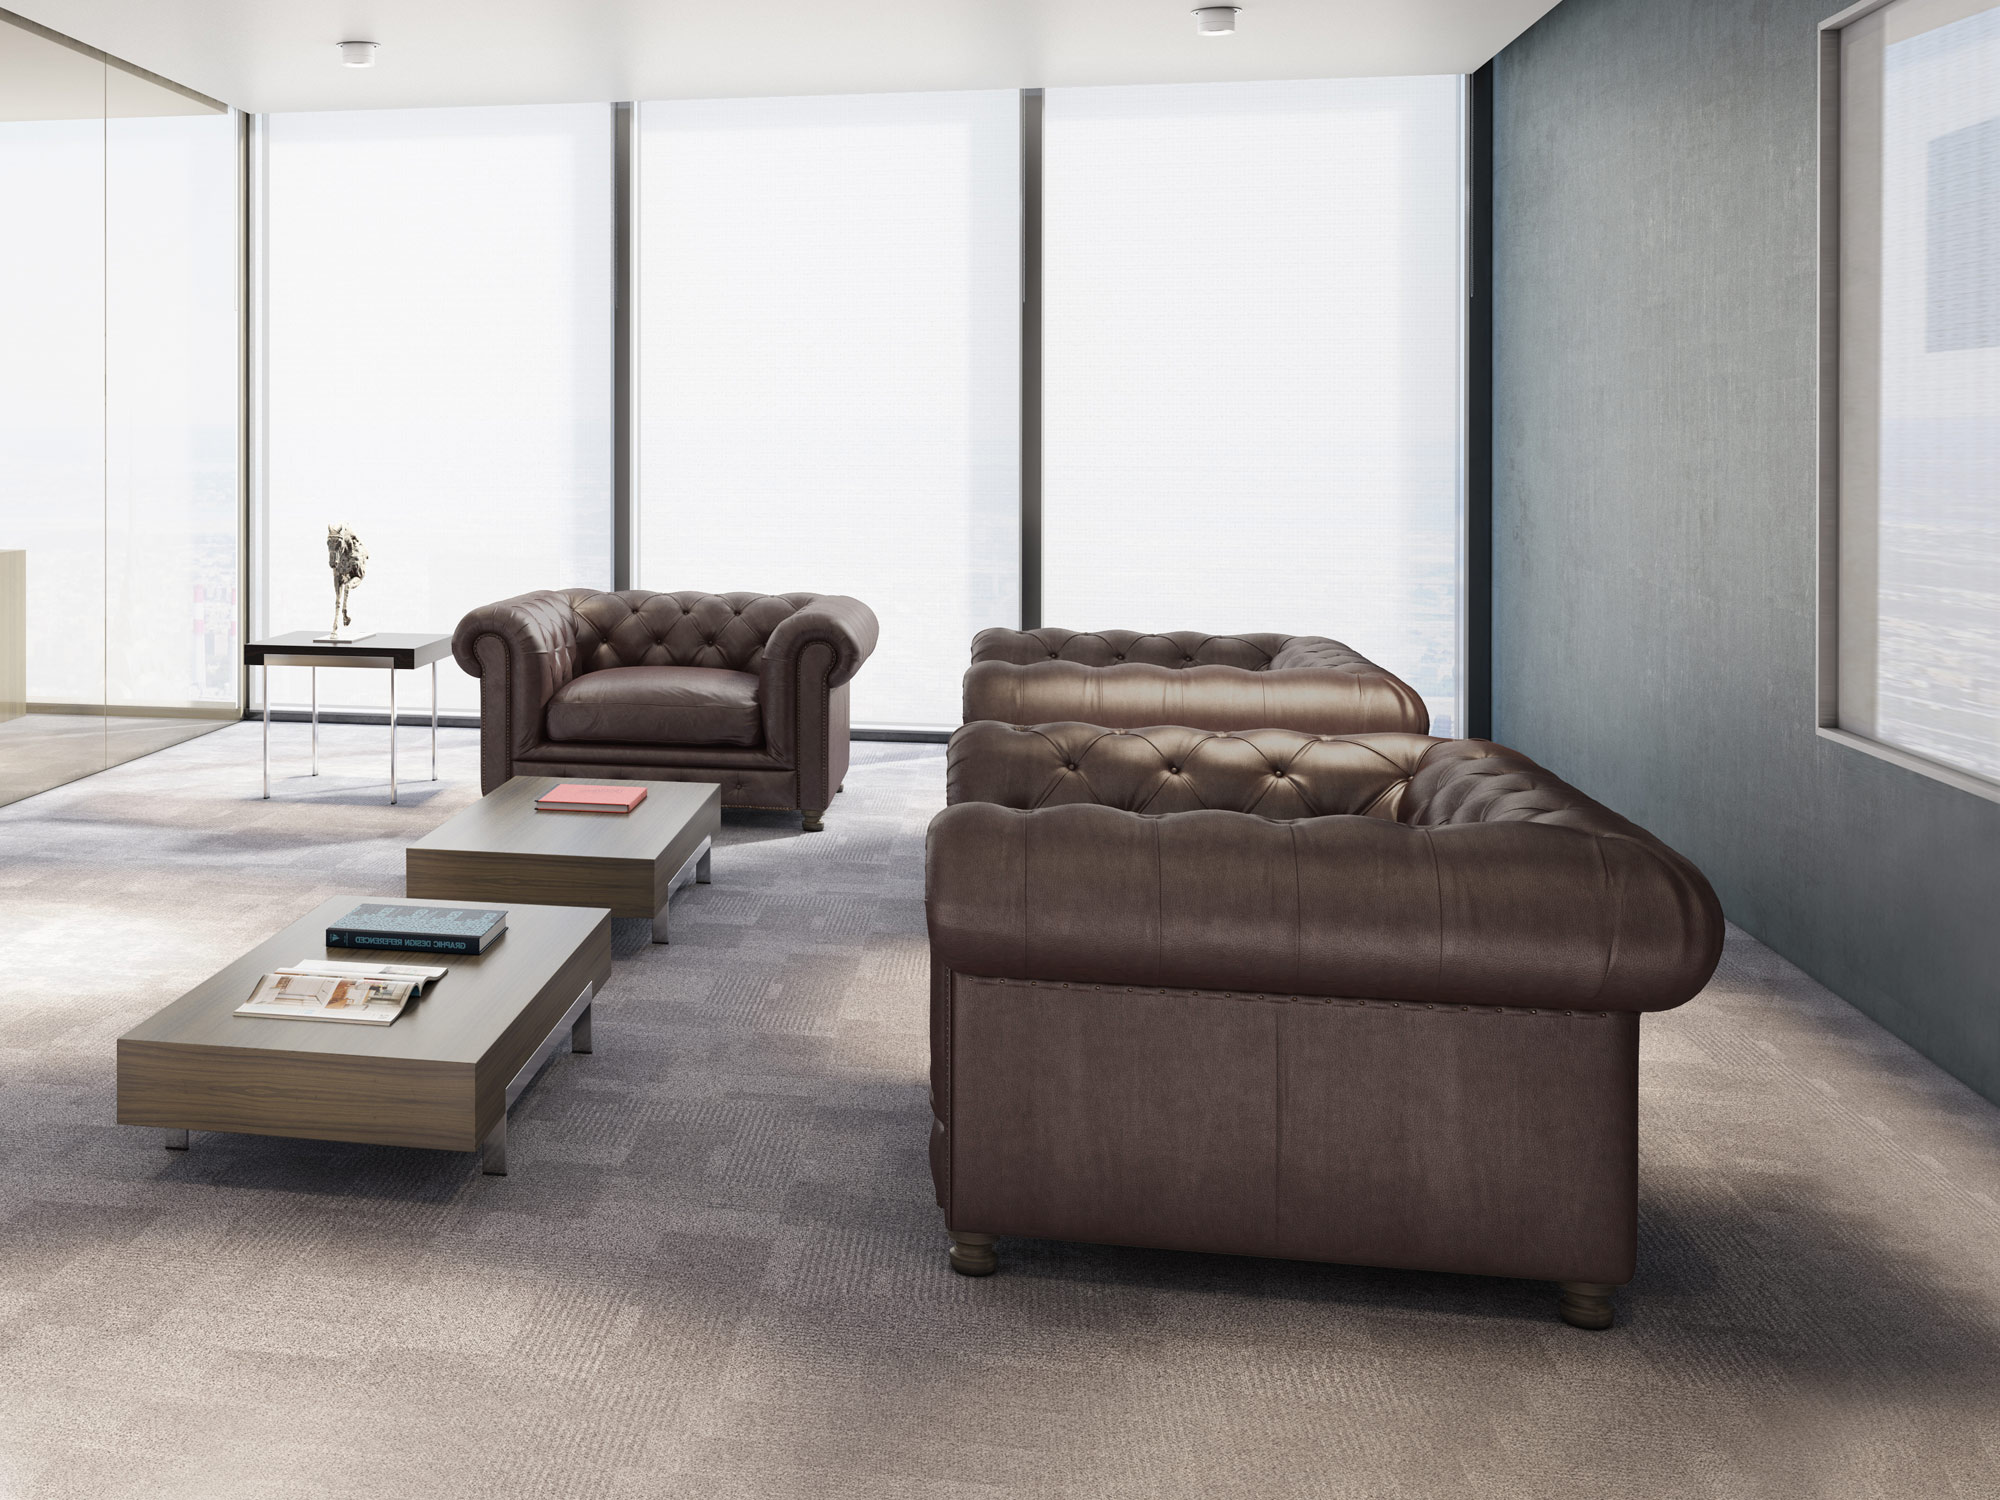 Oliver_The-executive-sofa